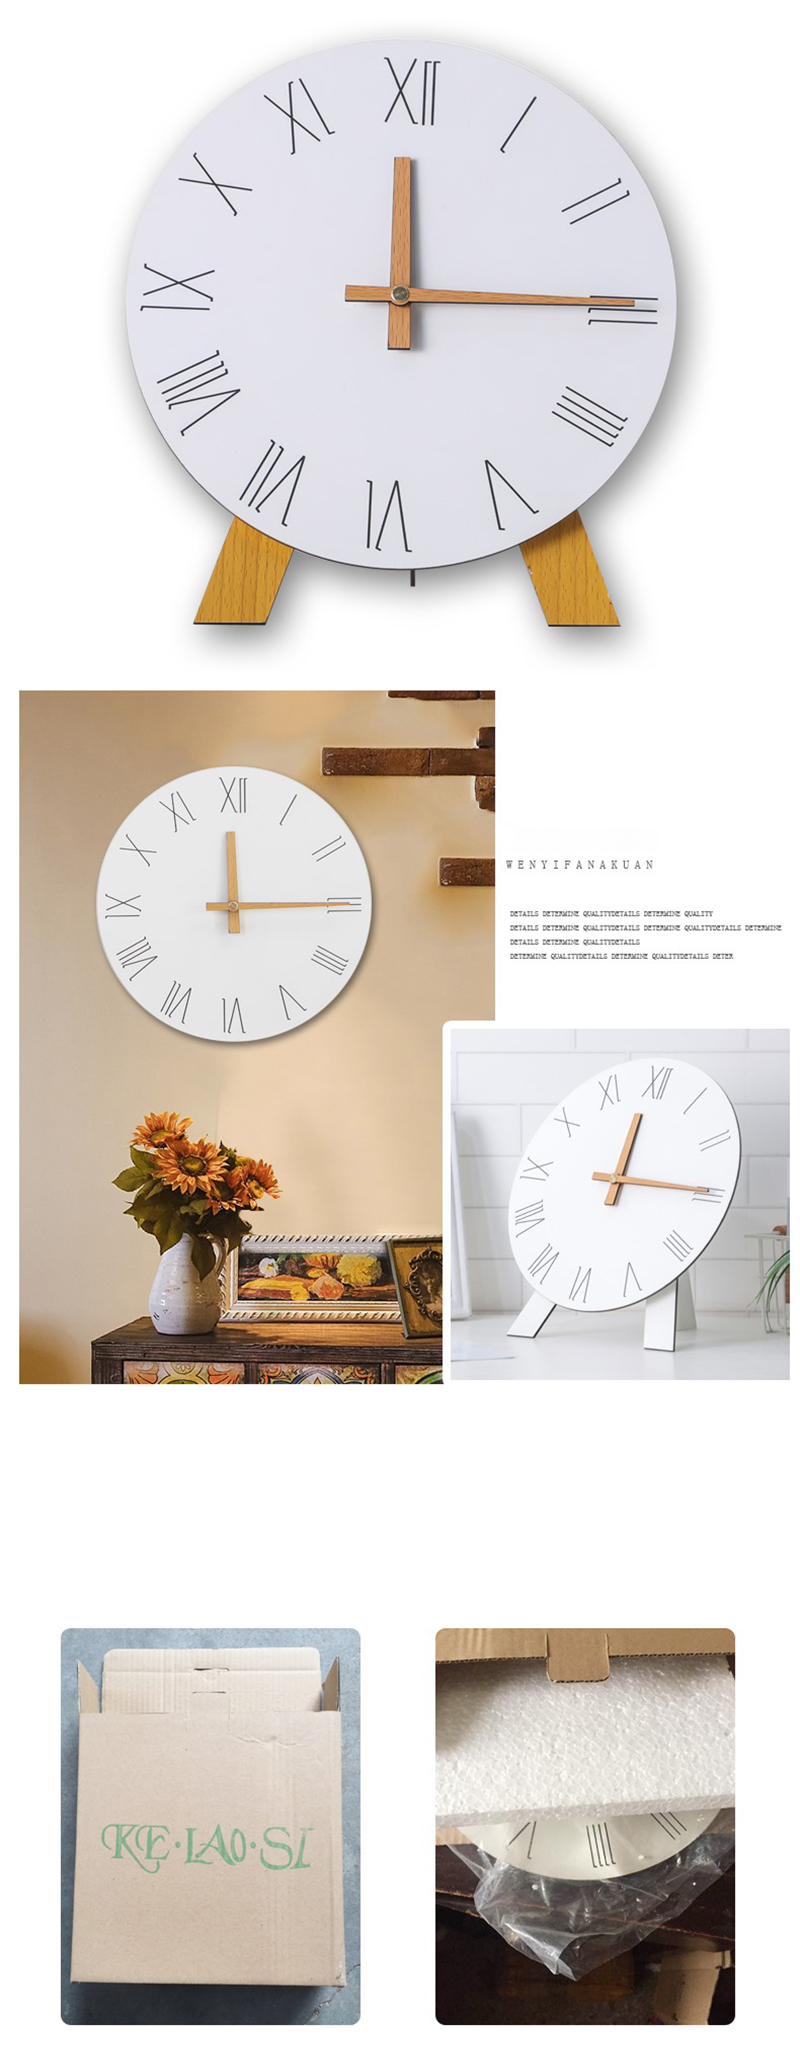 study clock watch office office table decoration flip calendar bamboo clock desk clock circular electronic desktop clock dementia clock (9)